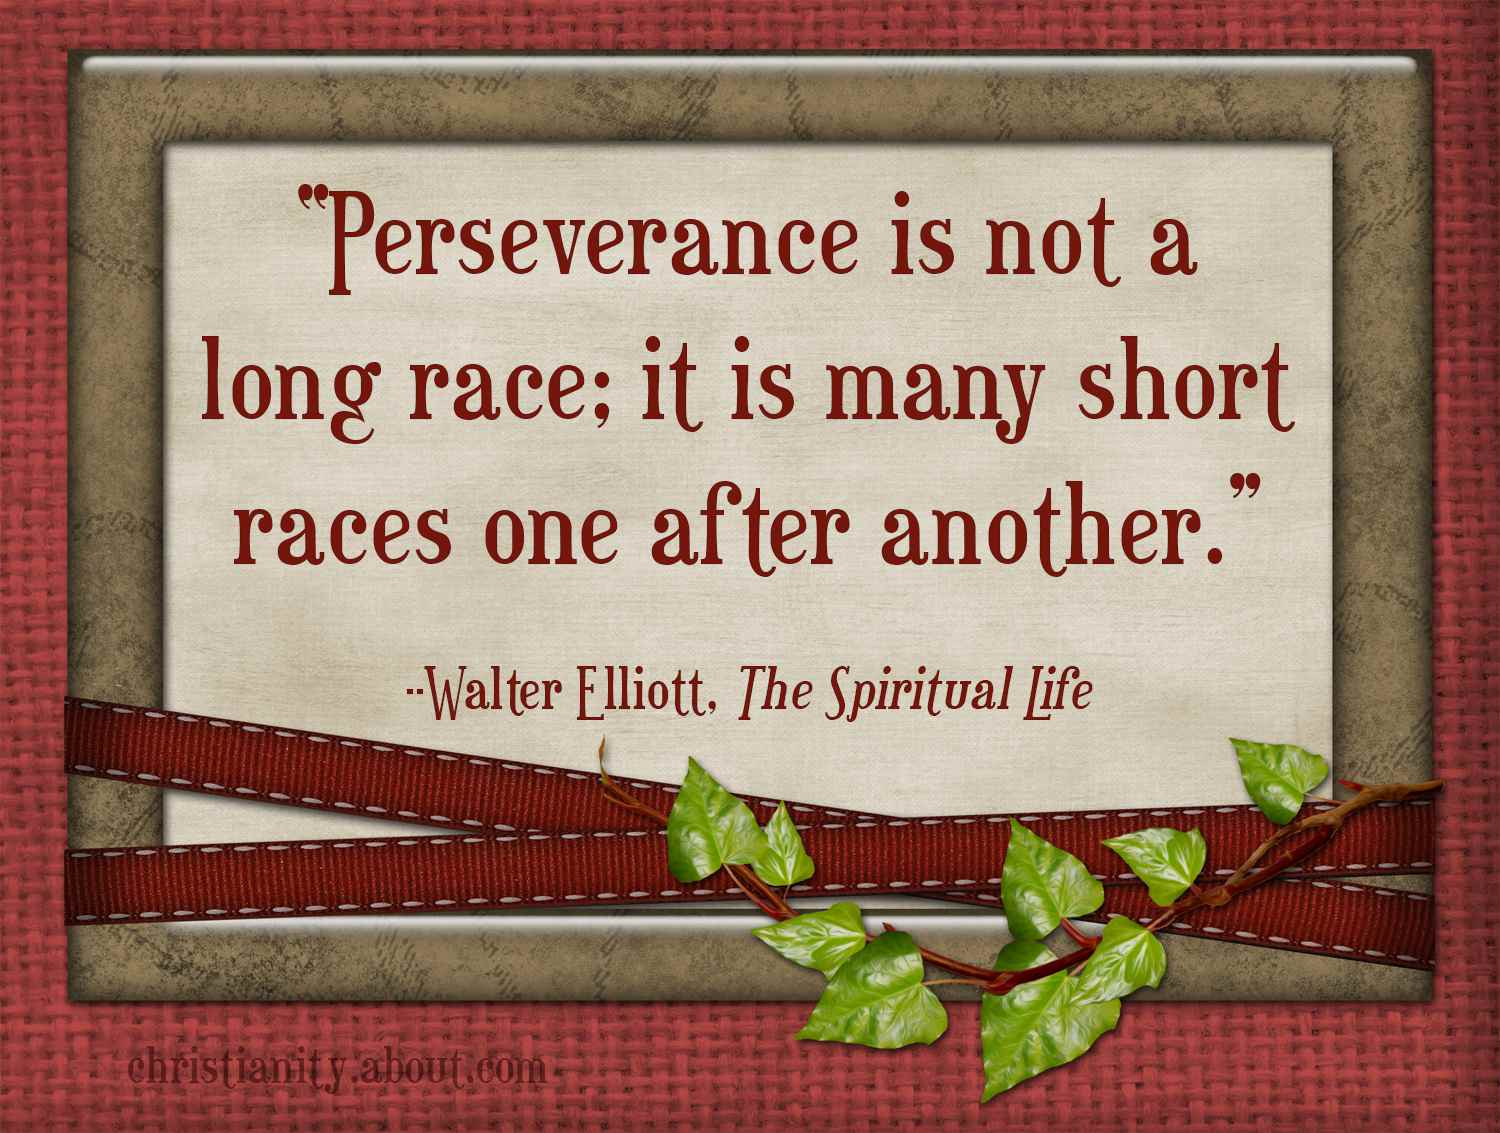 Perseverance in Hardship is the Hallmark of a Christian